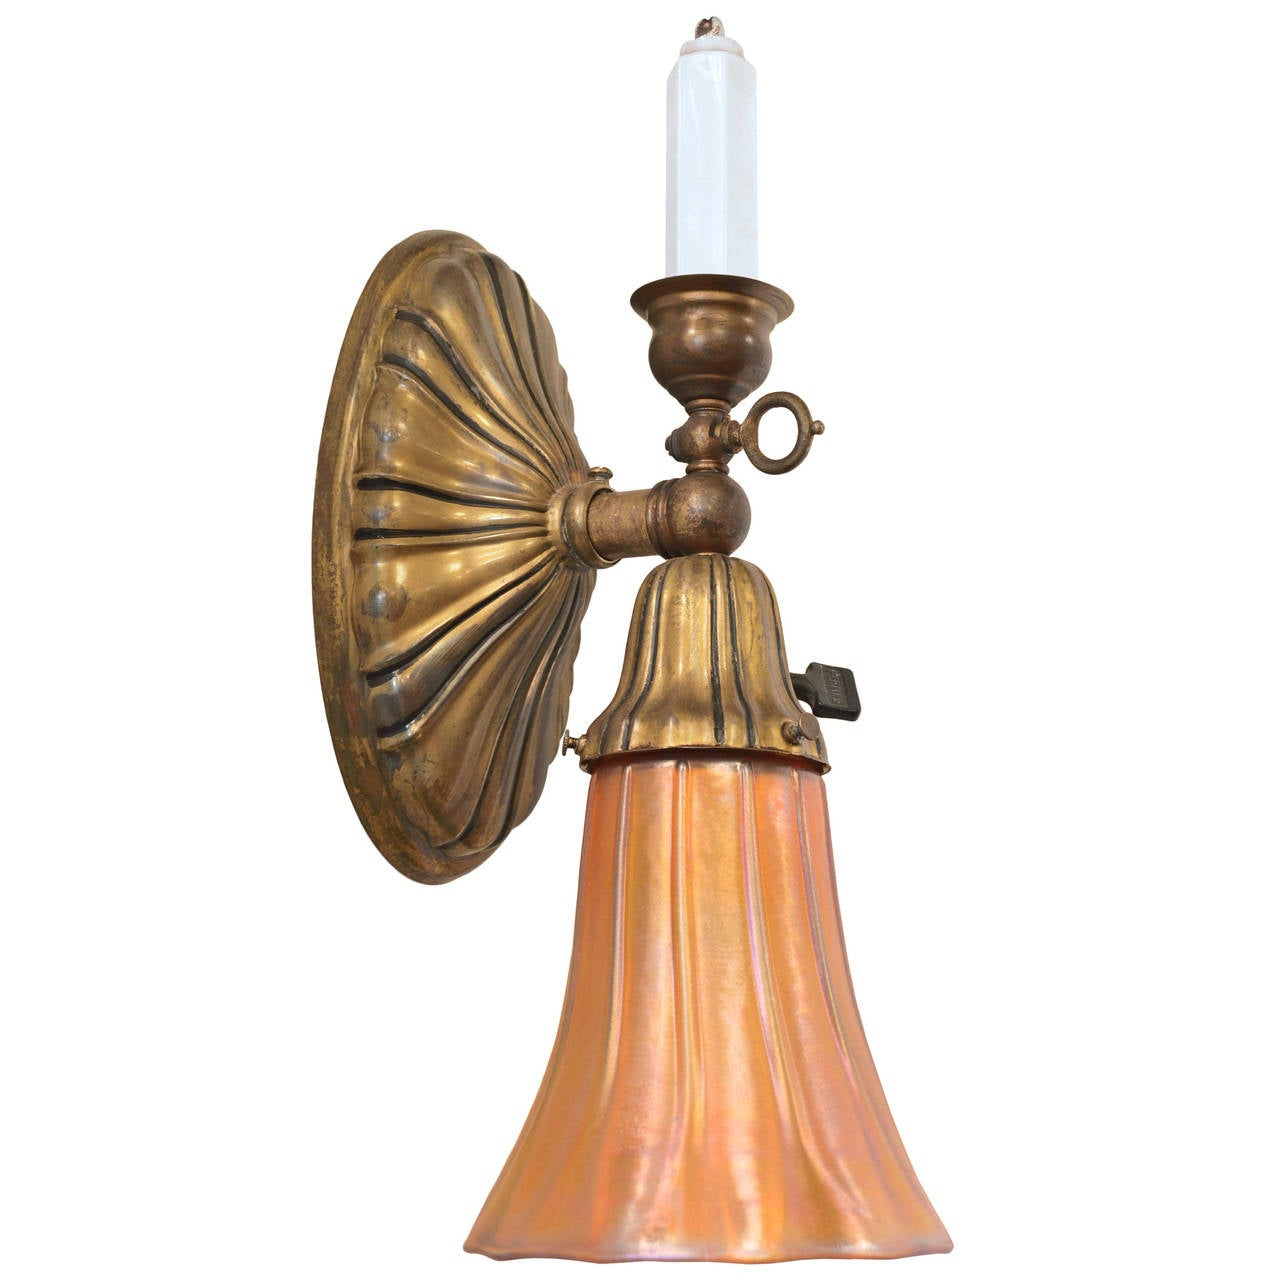 Colonial Electric Wall Sconces : Colonial Revival Sheffield Gas or Electric Sconce with Art Glass Shade at 1stdibs